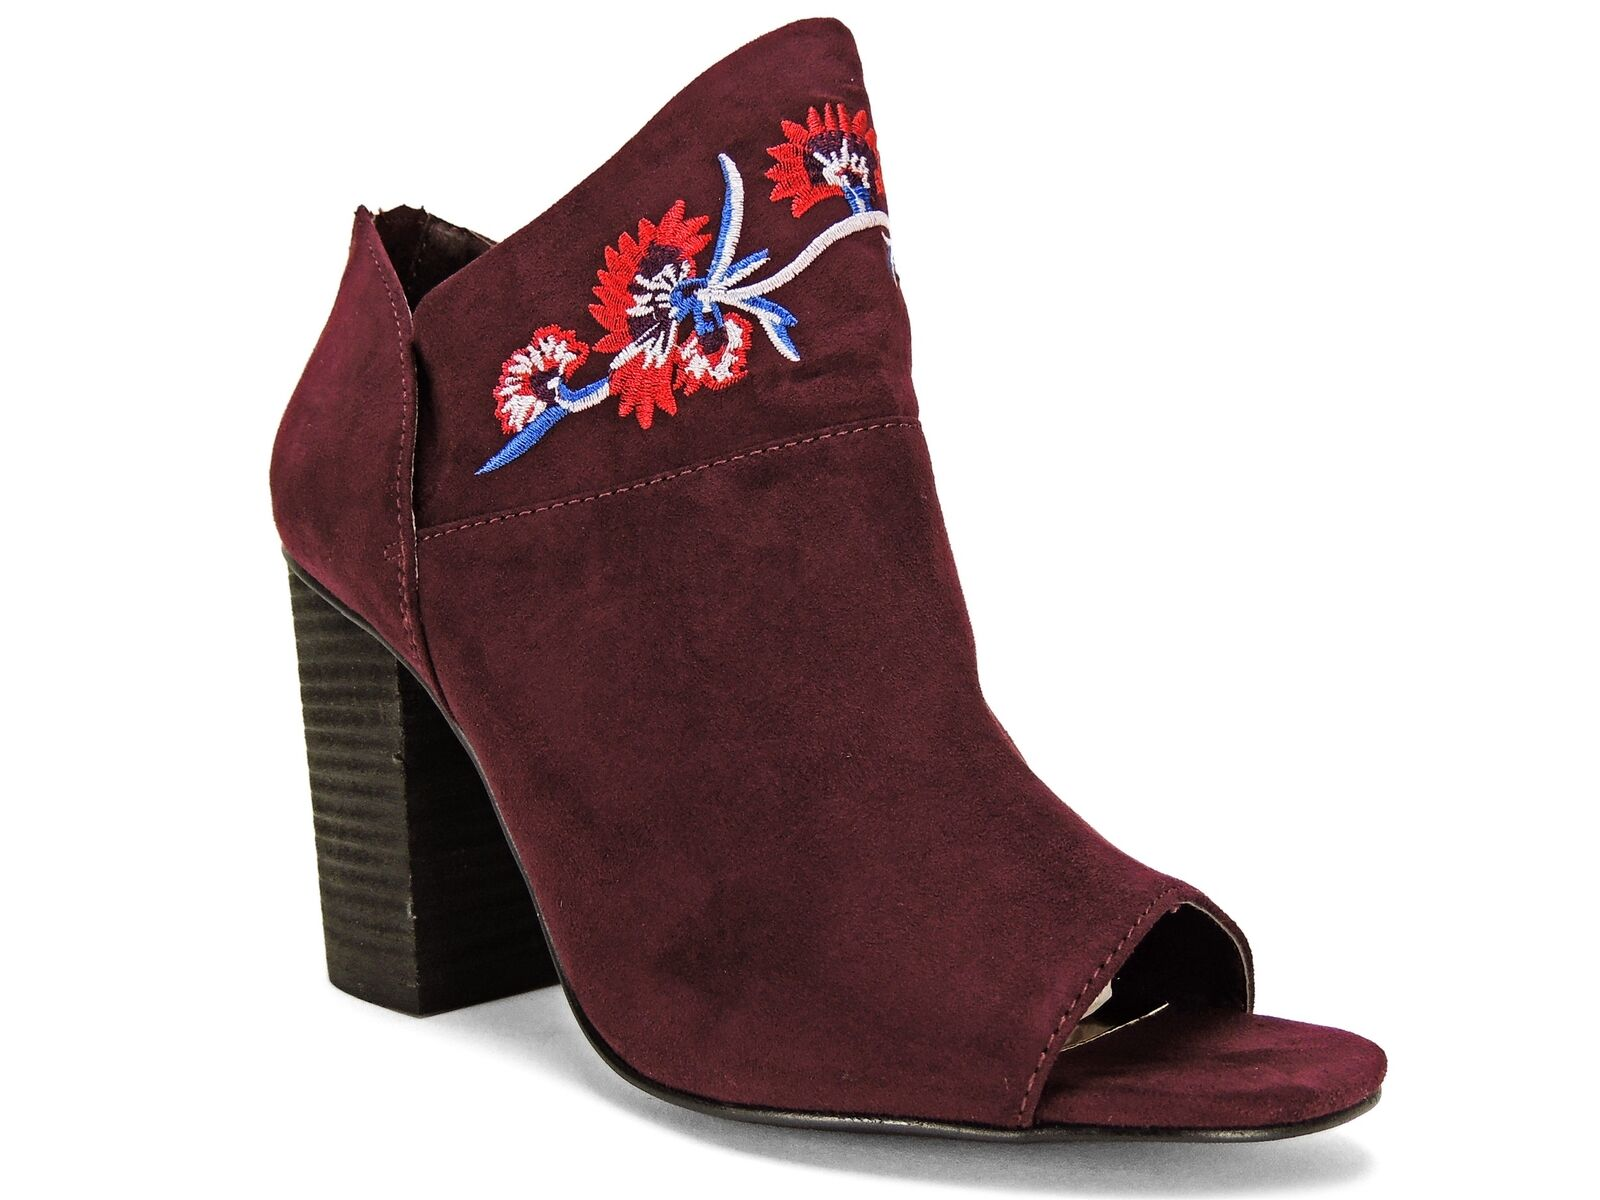 Carlos by Carlos Santana Women's Talana Embroidered Peep-Toe Booties Syrah 7.5 M